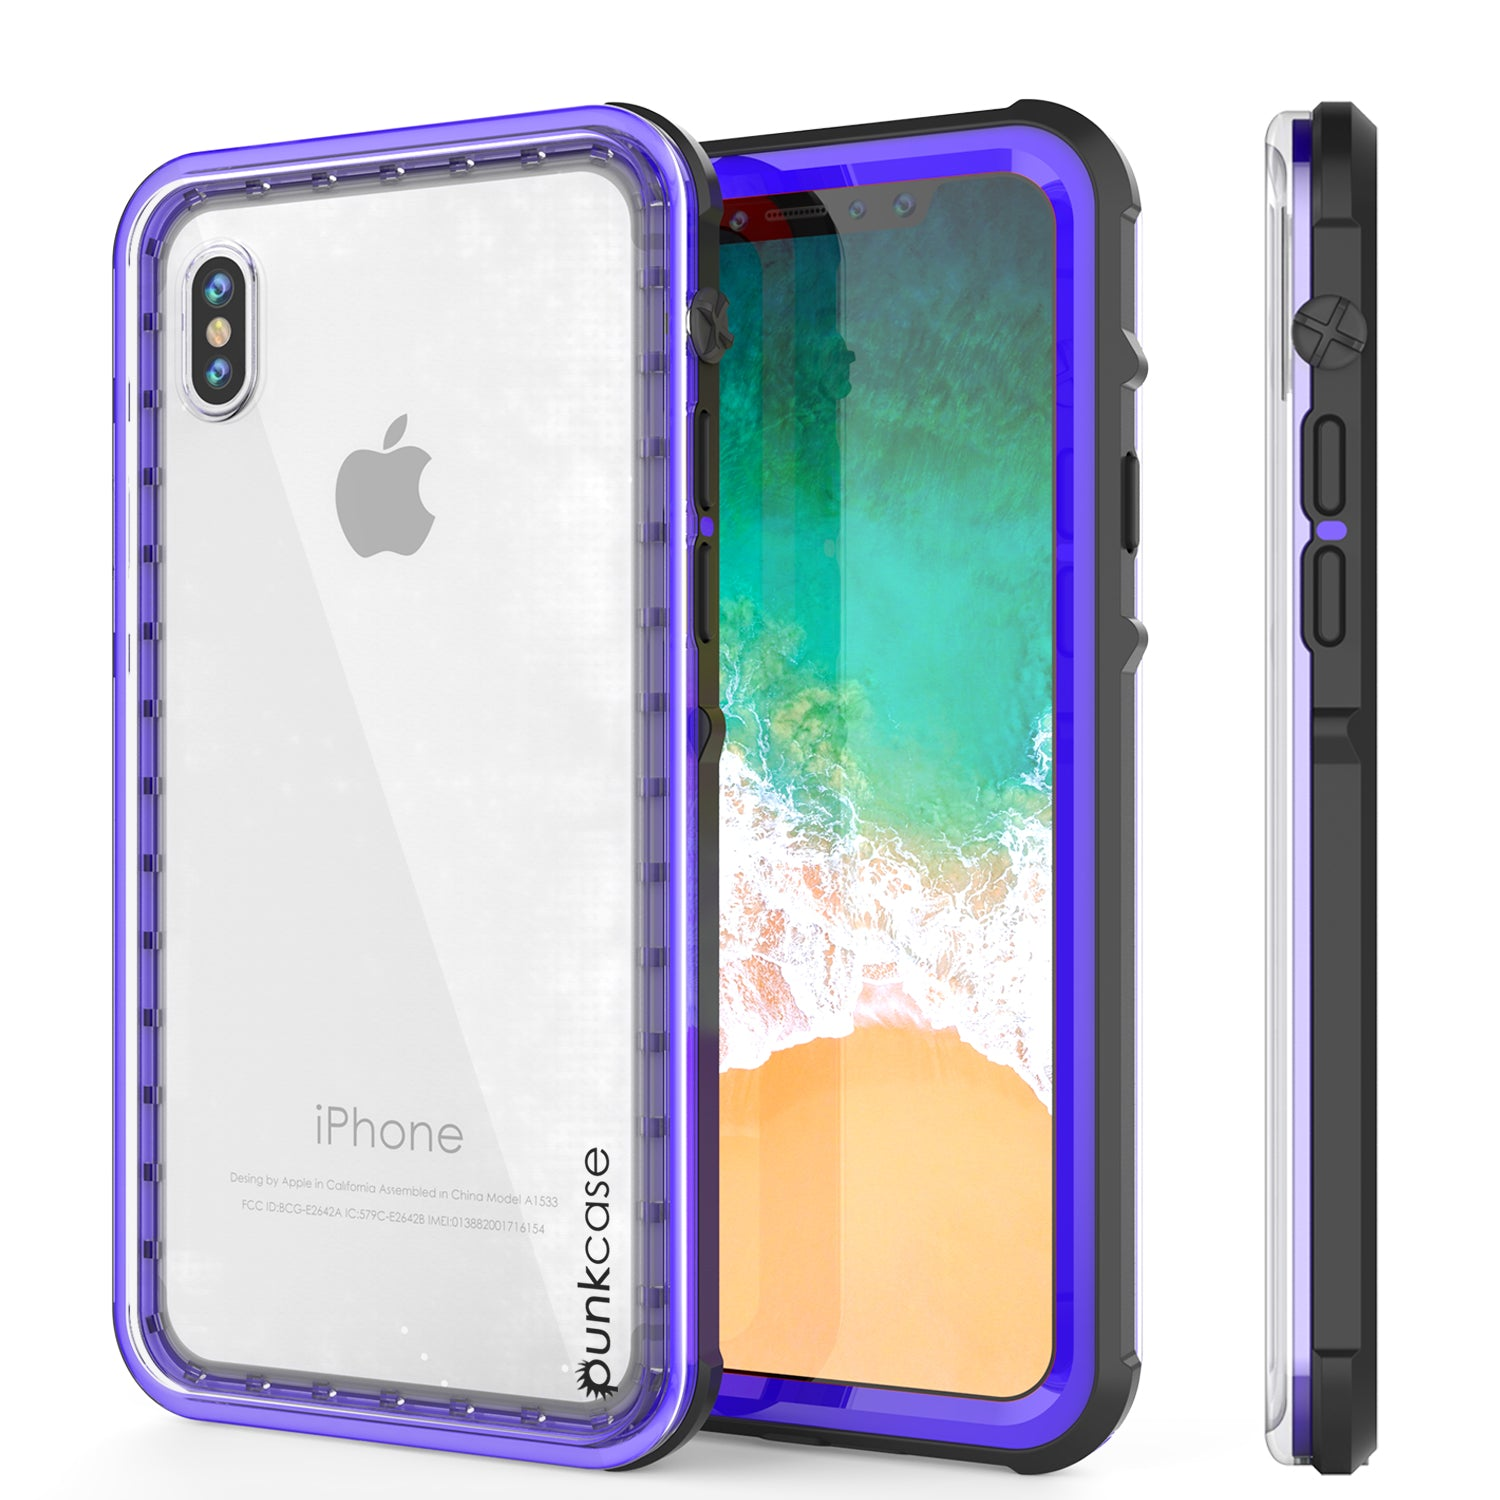 iPhone X Case, PUNKCase [CRYSTAL SERIES] Protective IP68 Certified Cover [Purple]